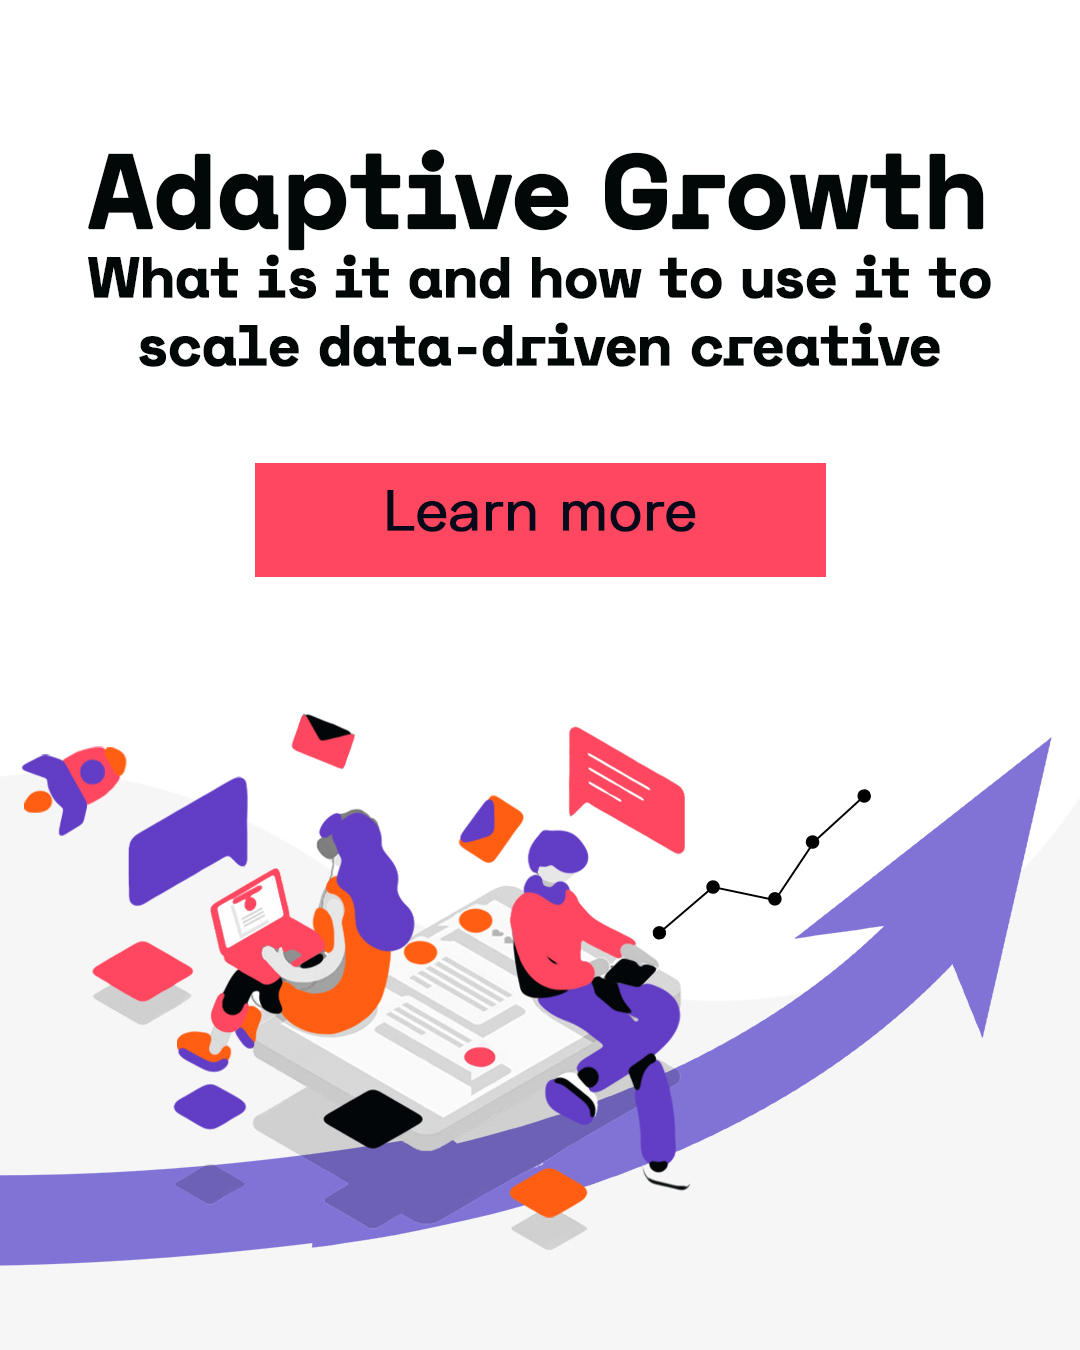 Adaptive Growth: What is it and how to use it to scale data-driven creative